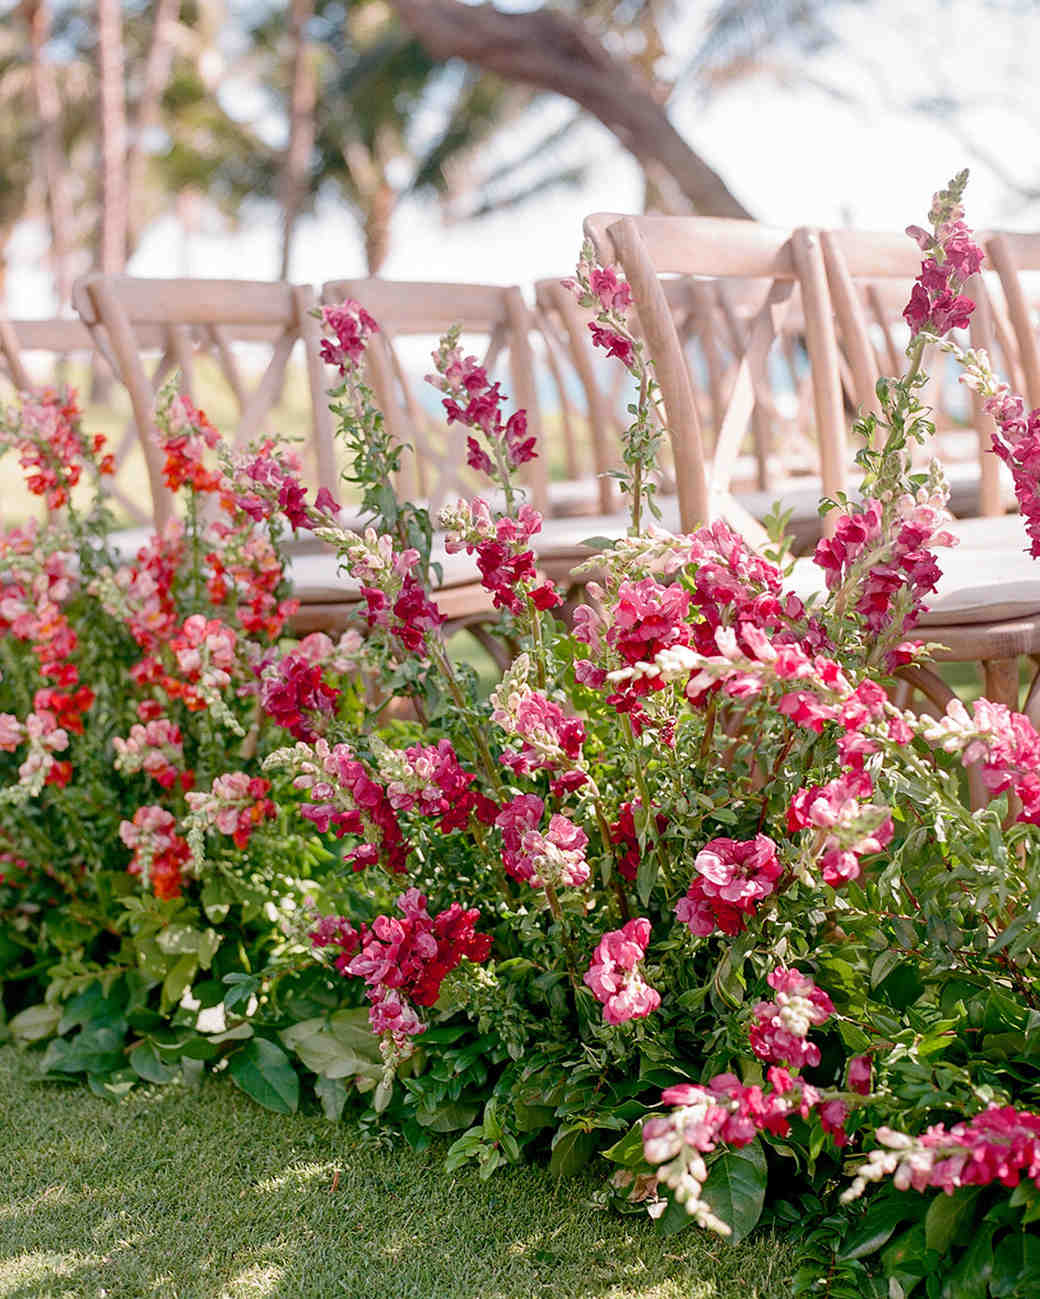 snapdragon floral arrangements lining wedding aisle next to wooden chairs